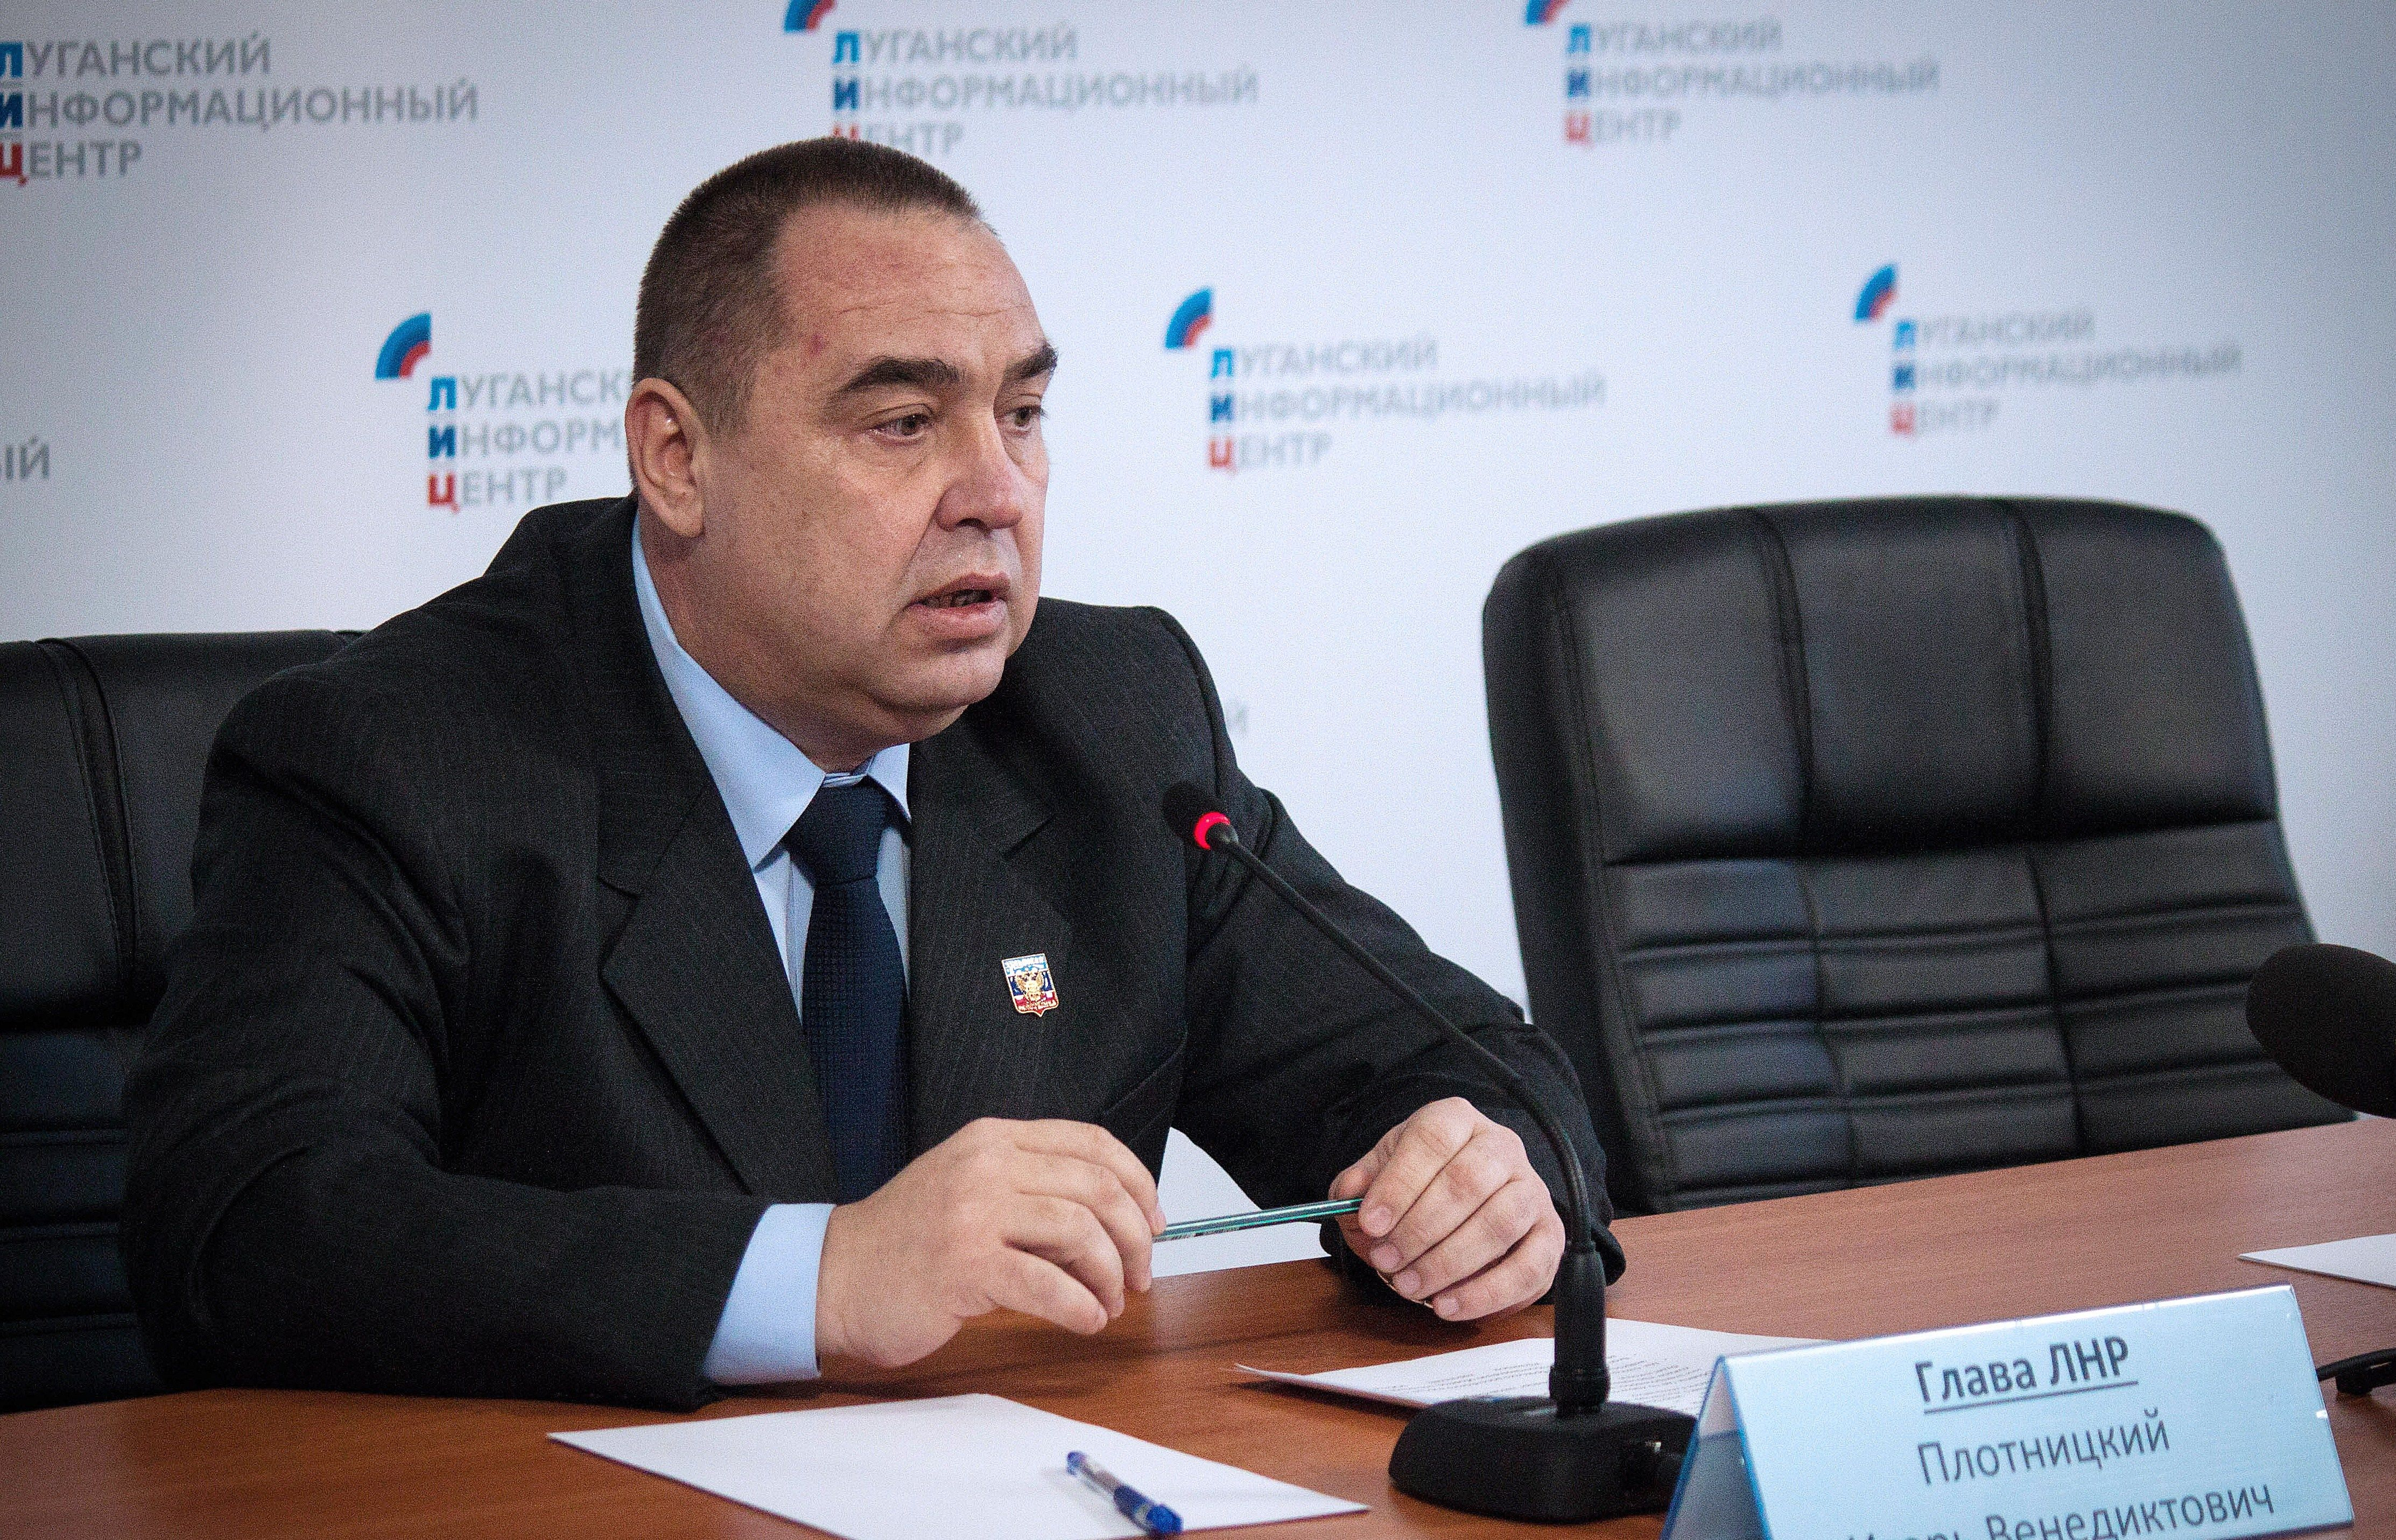 LPR Head suggests swapping all war prisoners with Ukraine - http://www.therussophile.org/lpr-head-suggests-swapping-all-war-prisoners-with-ukraine.html/